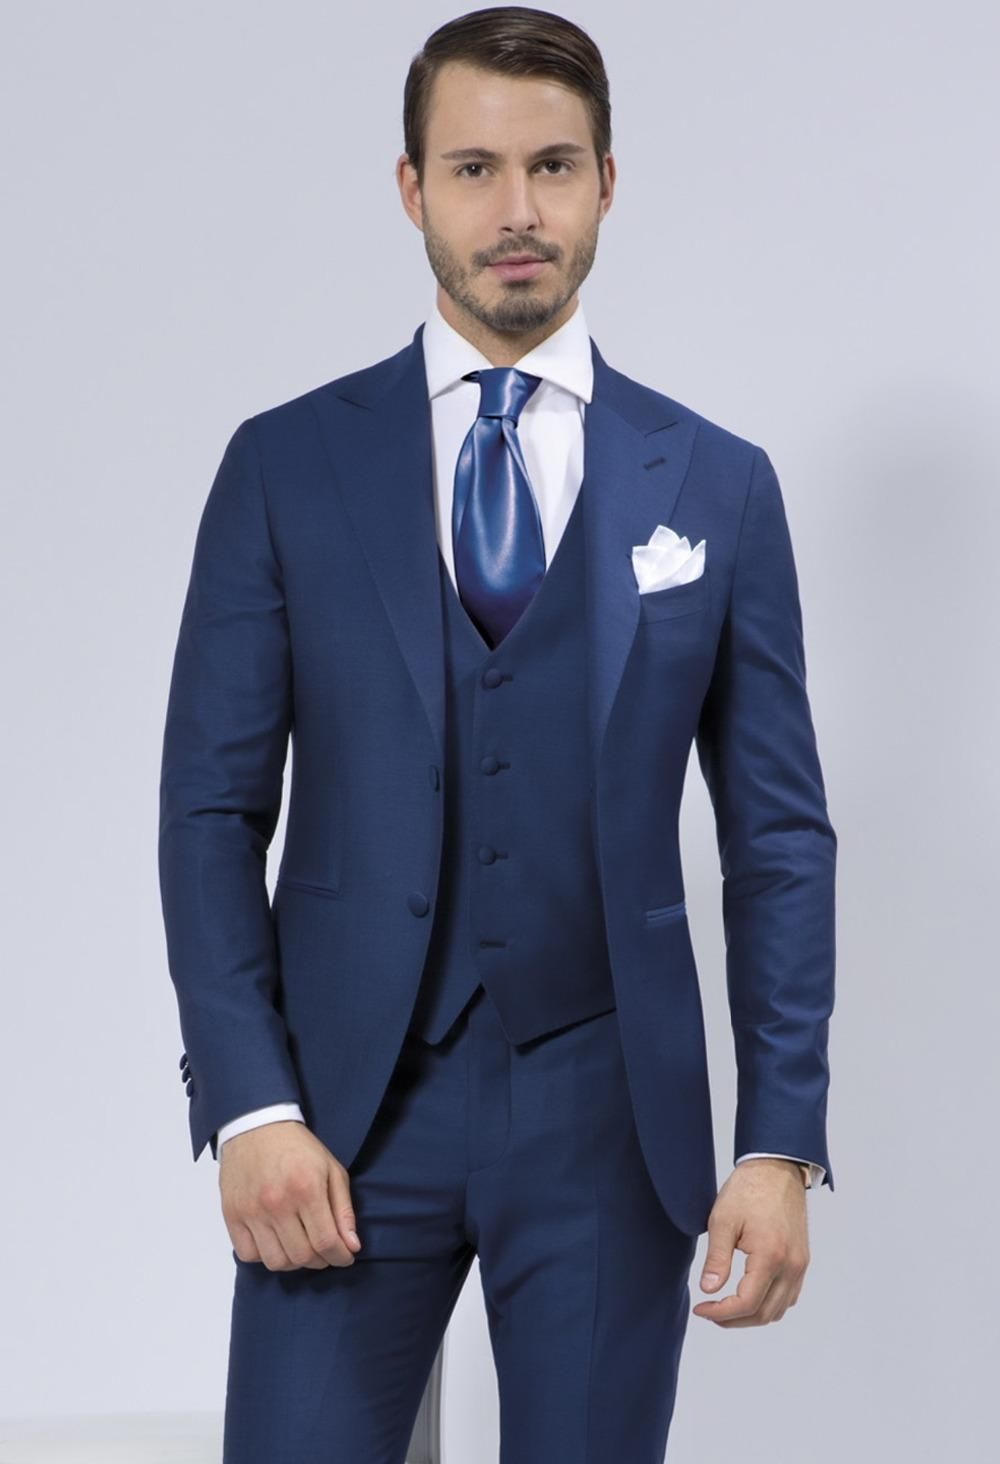 Mens Wedding Suits To Be The Man Of Day Ideas | Clothe & Look Fly ...